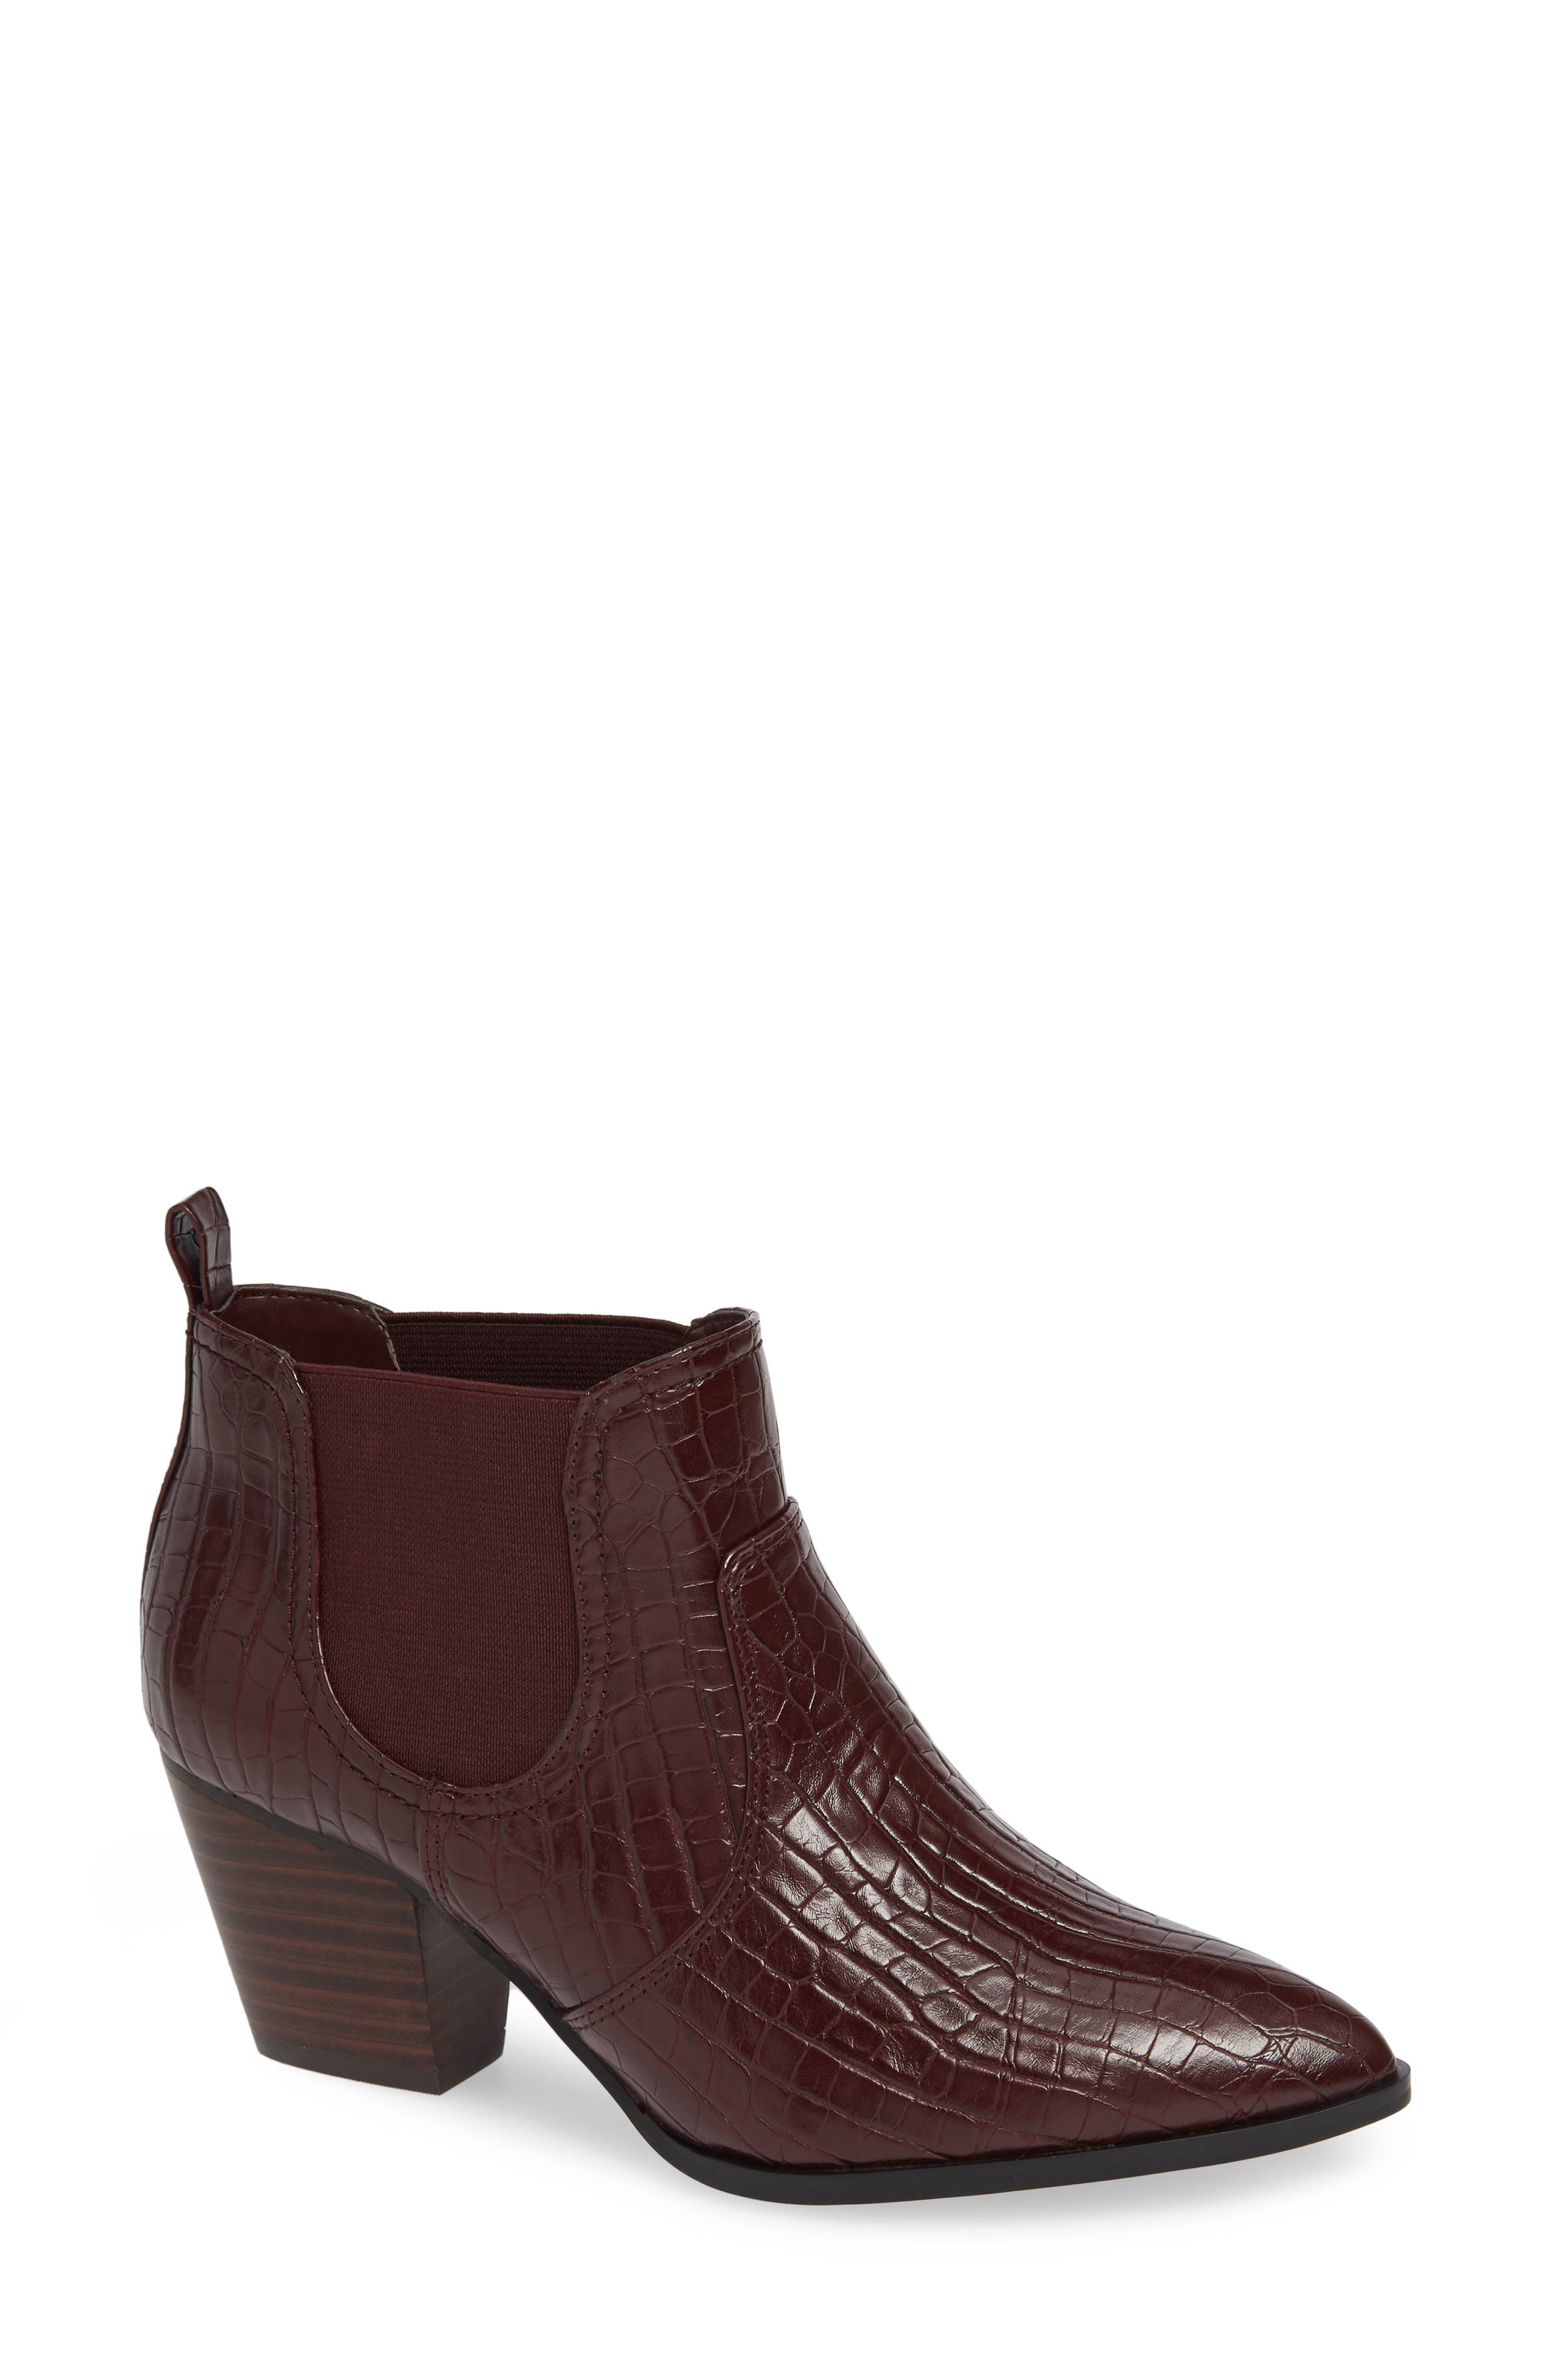 Emerson II Chelsea Bootie,                             Main thumbnail 1, color,                             BURGUNDY